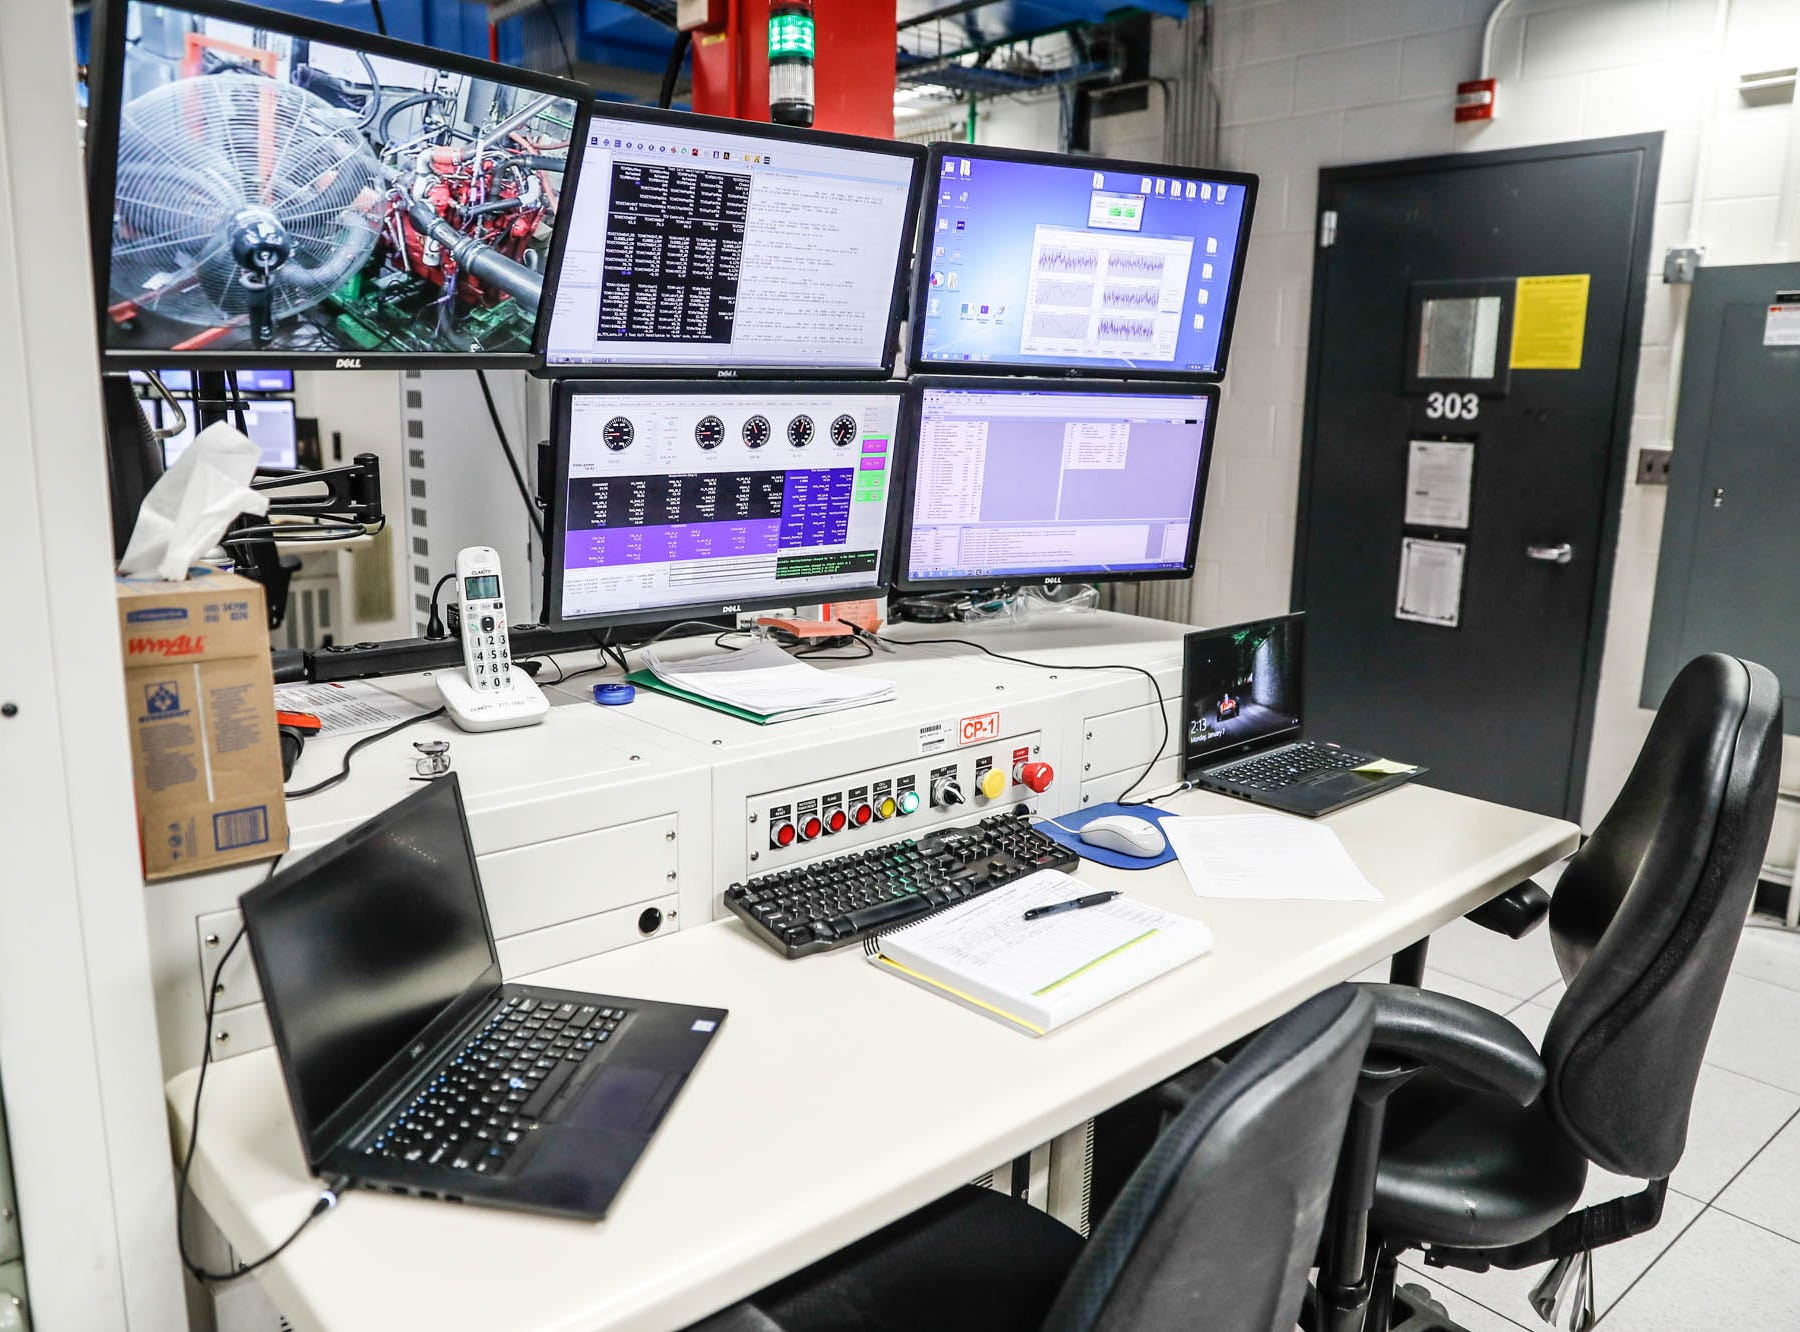 Cummins engines are rigorously tested in test cells like the one shown here at the Cummins Technical Center, 1900 McKinley Ave, Columbus, Ind., on Monday, Jan. 7, 2018. An engineer can control the testing from a test cell while the engine is inside a closed room to the right of the computer console.